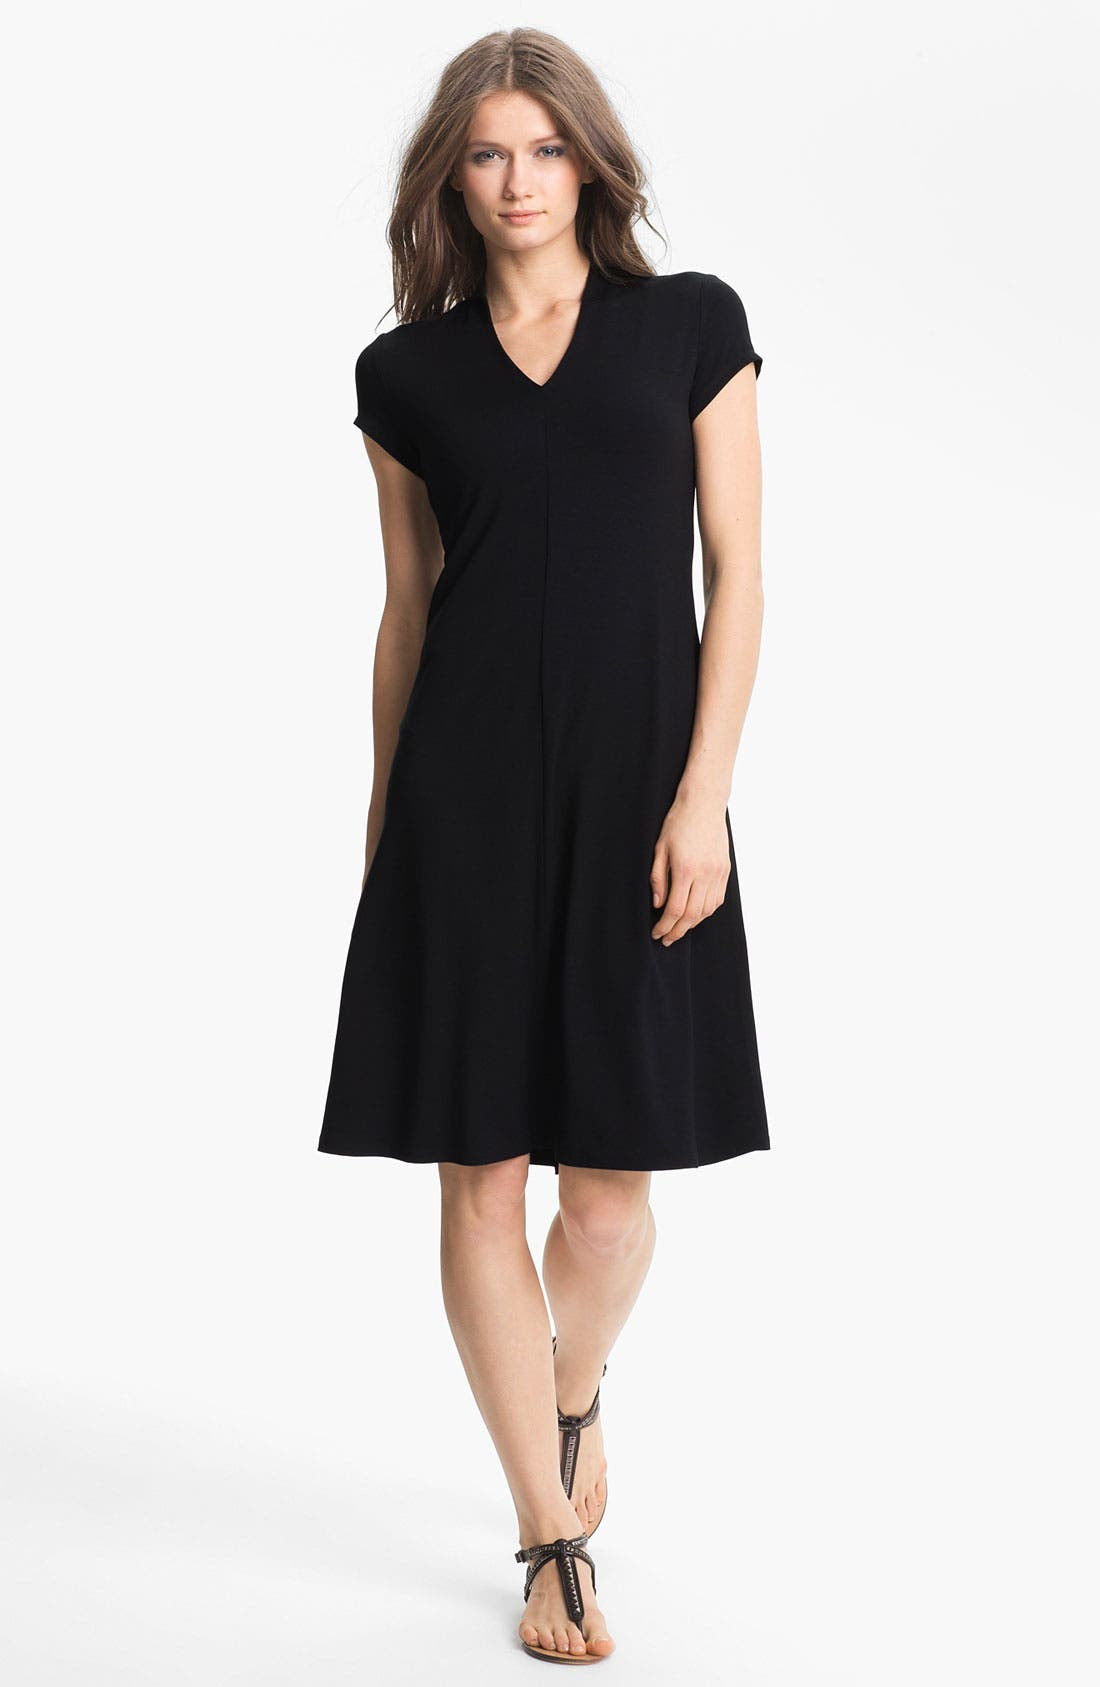 Alternate Image 1 Selected - Eileen Fisher Knit Fit & Flare Dress